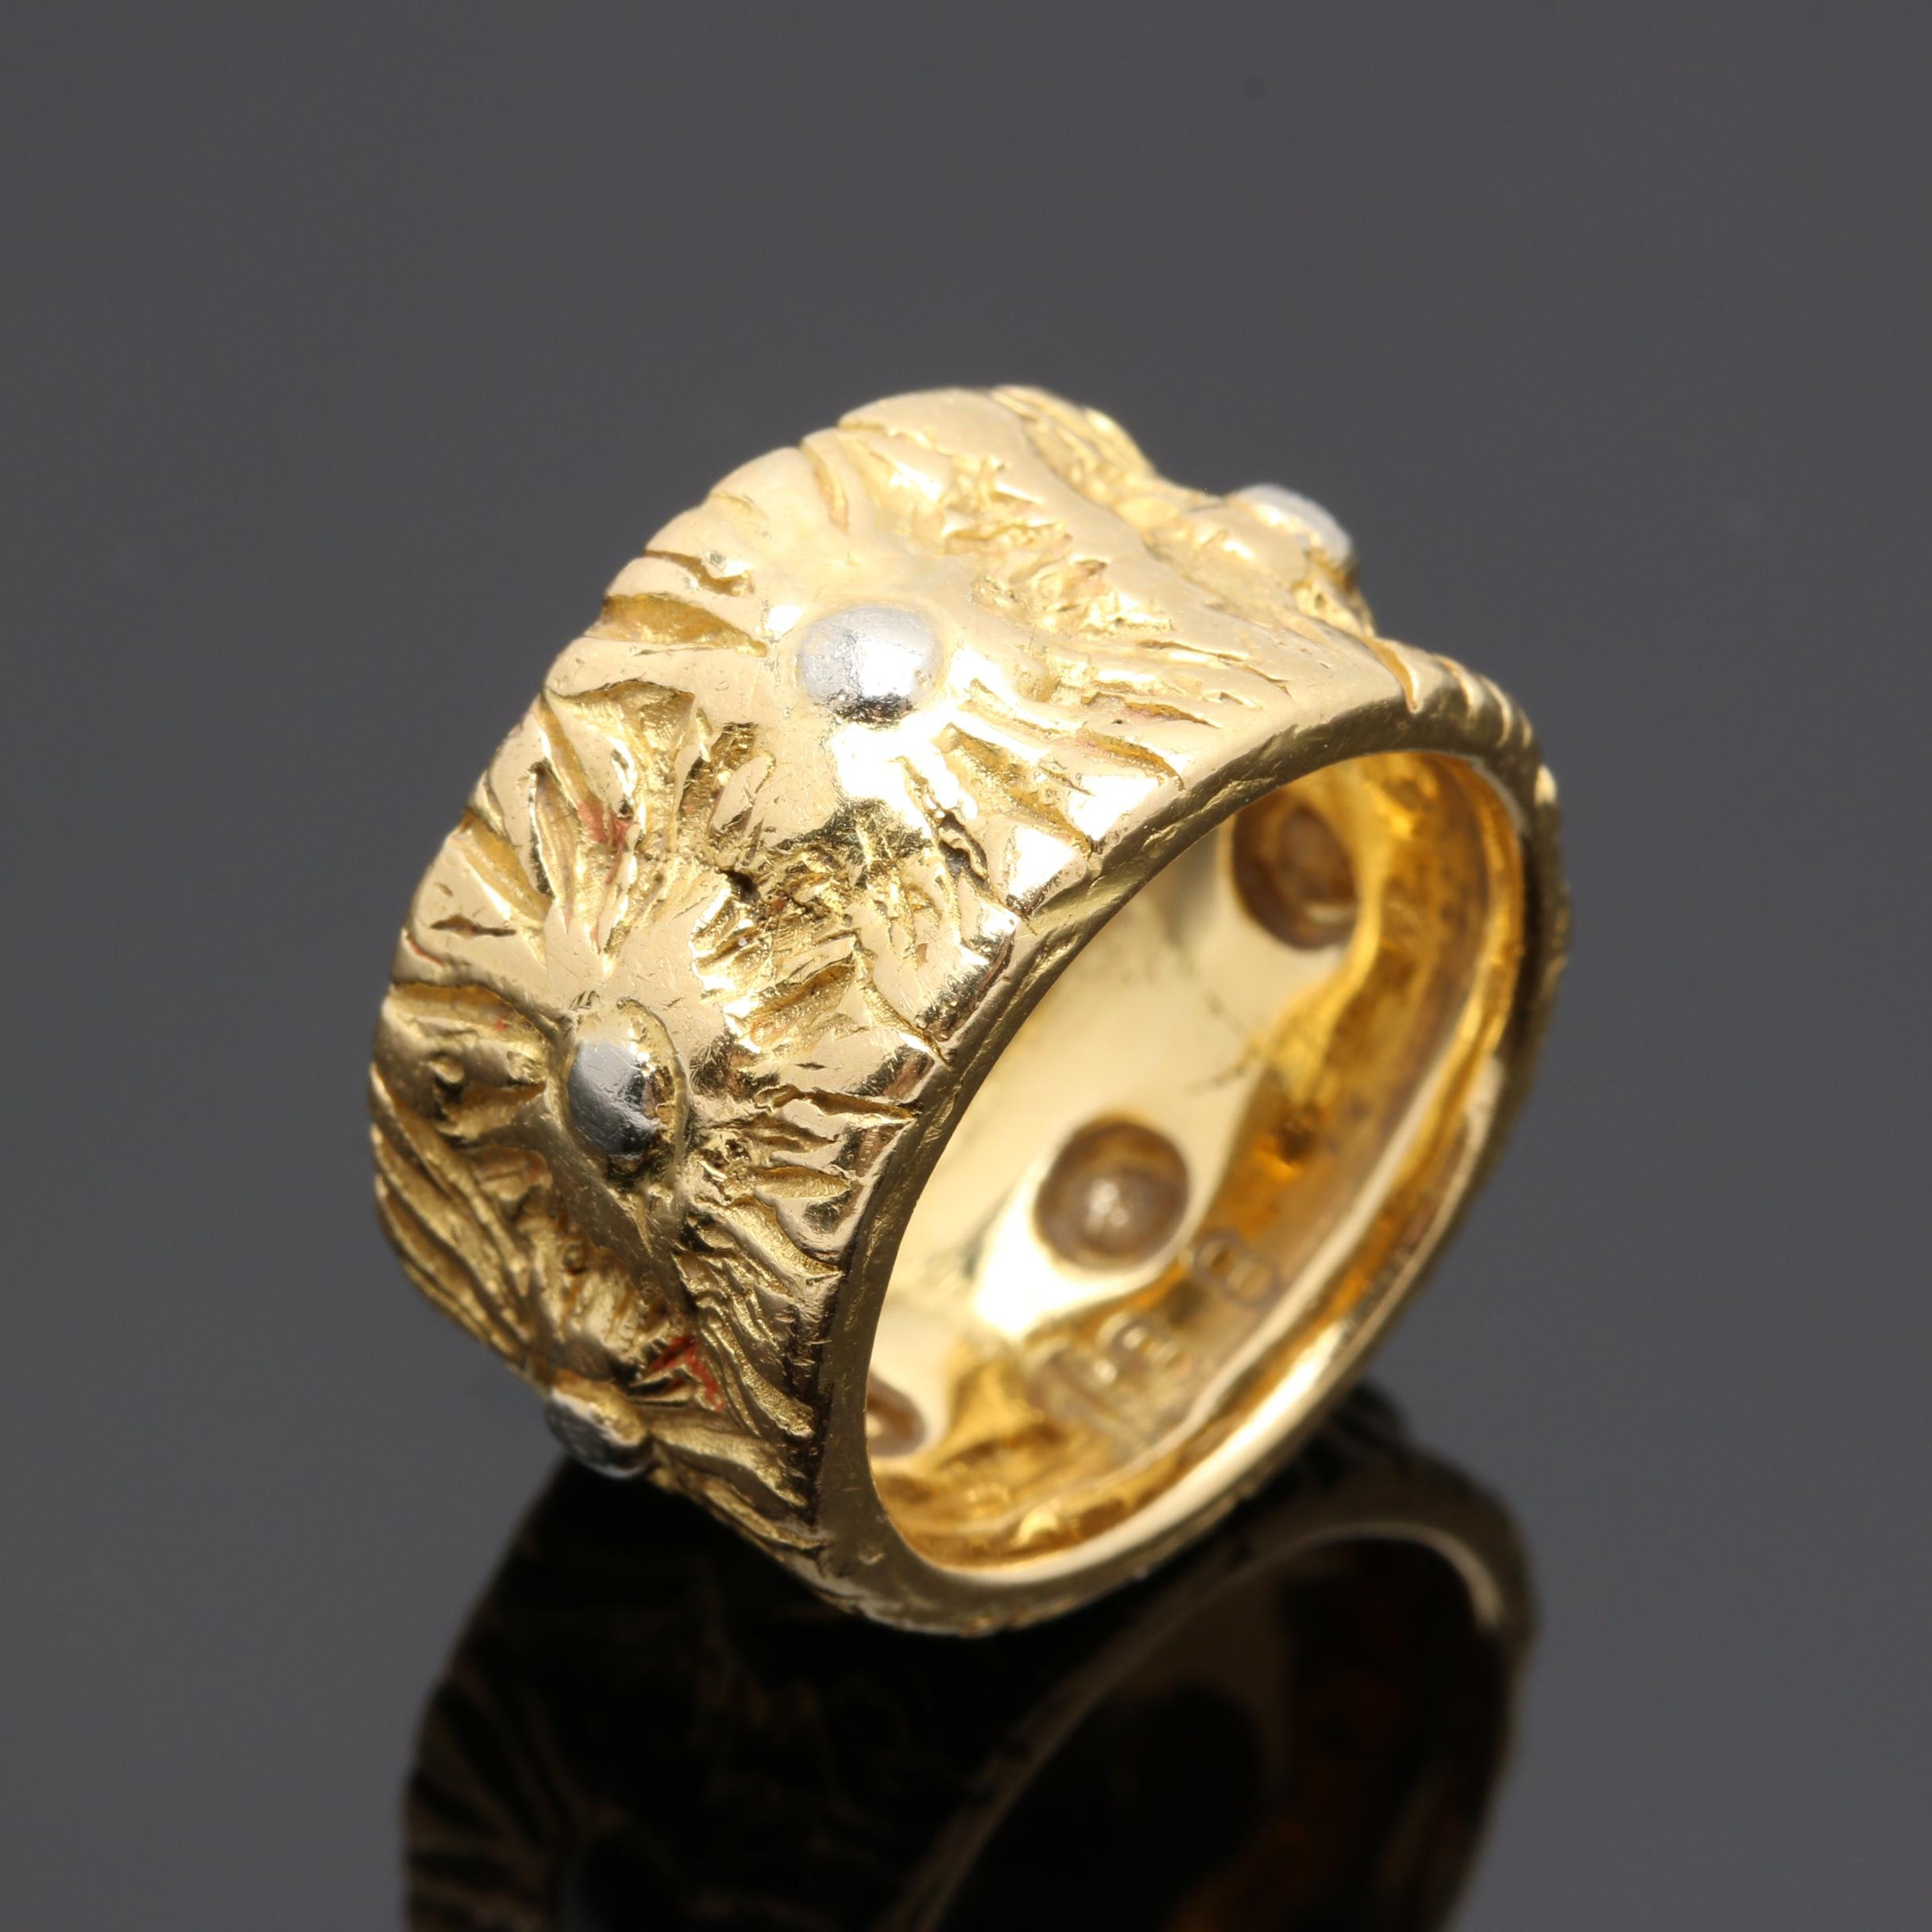 Cartier 18K Yellow Gold Ring With White Gold Accents